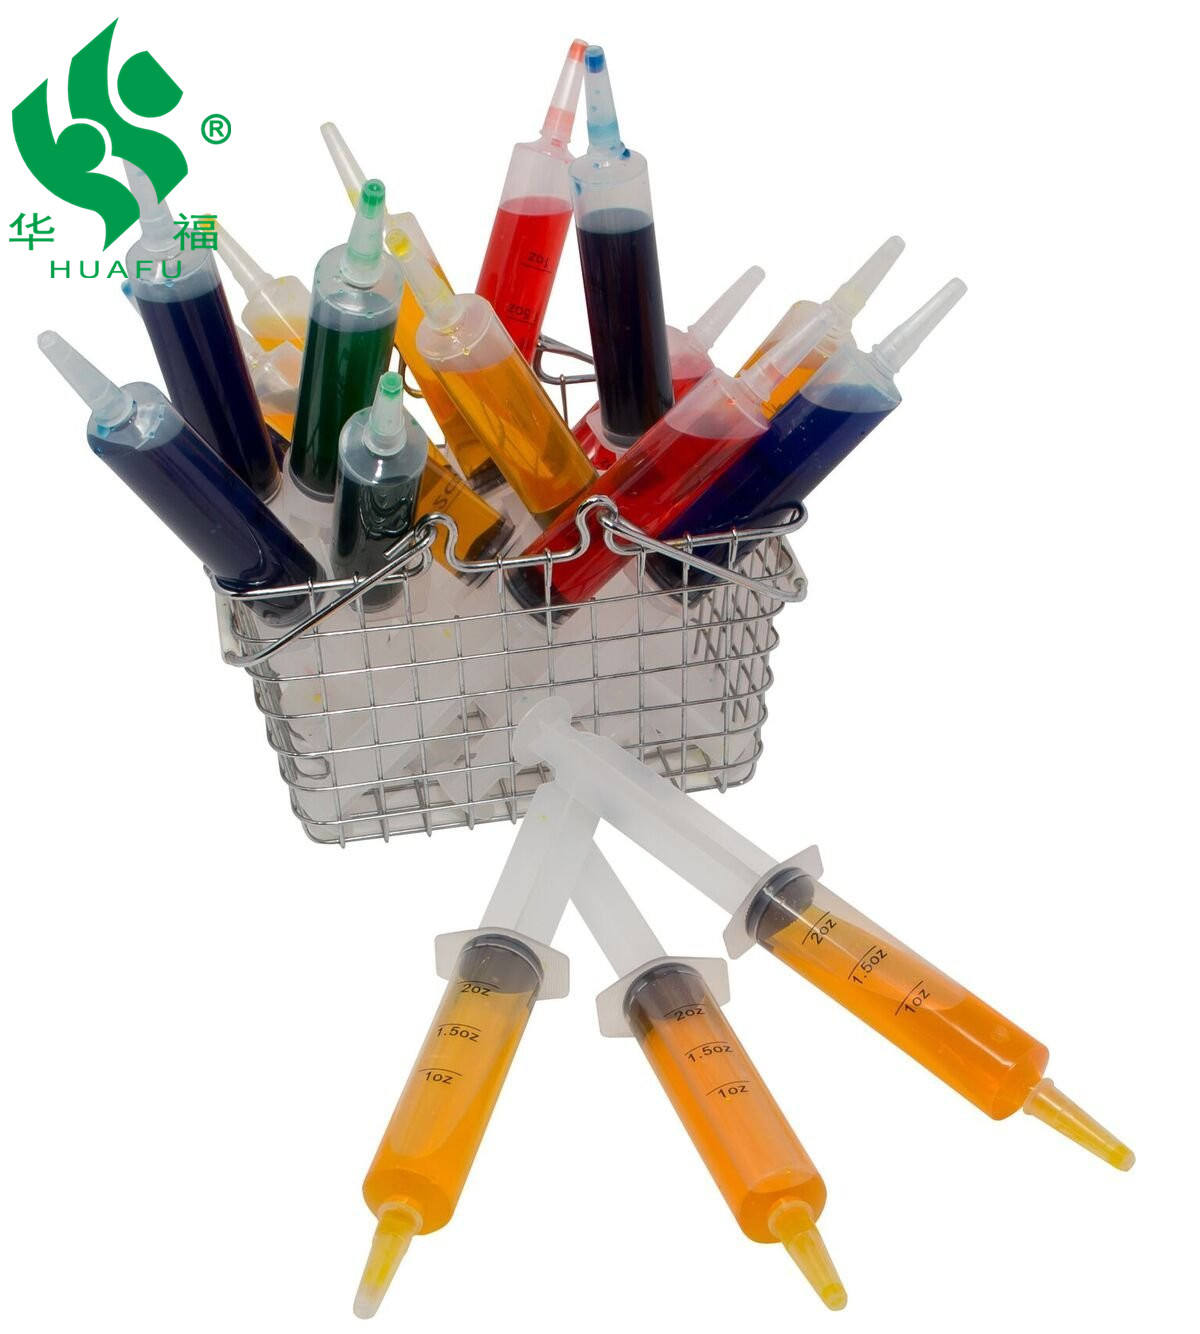 Reusable Jello Shot Syringes W Leakproof Caps For Drink Shots & Shooters 2oz 25 Tube Gastrostomy